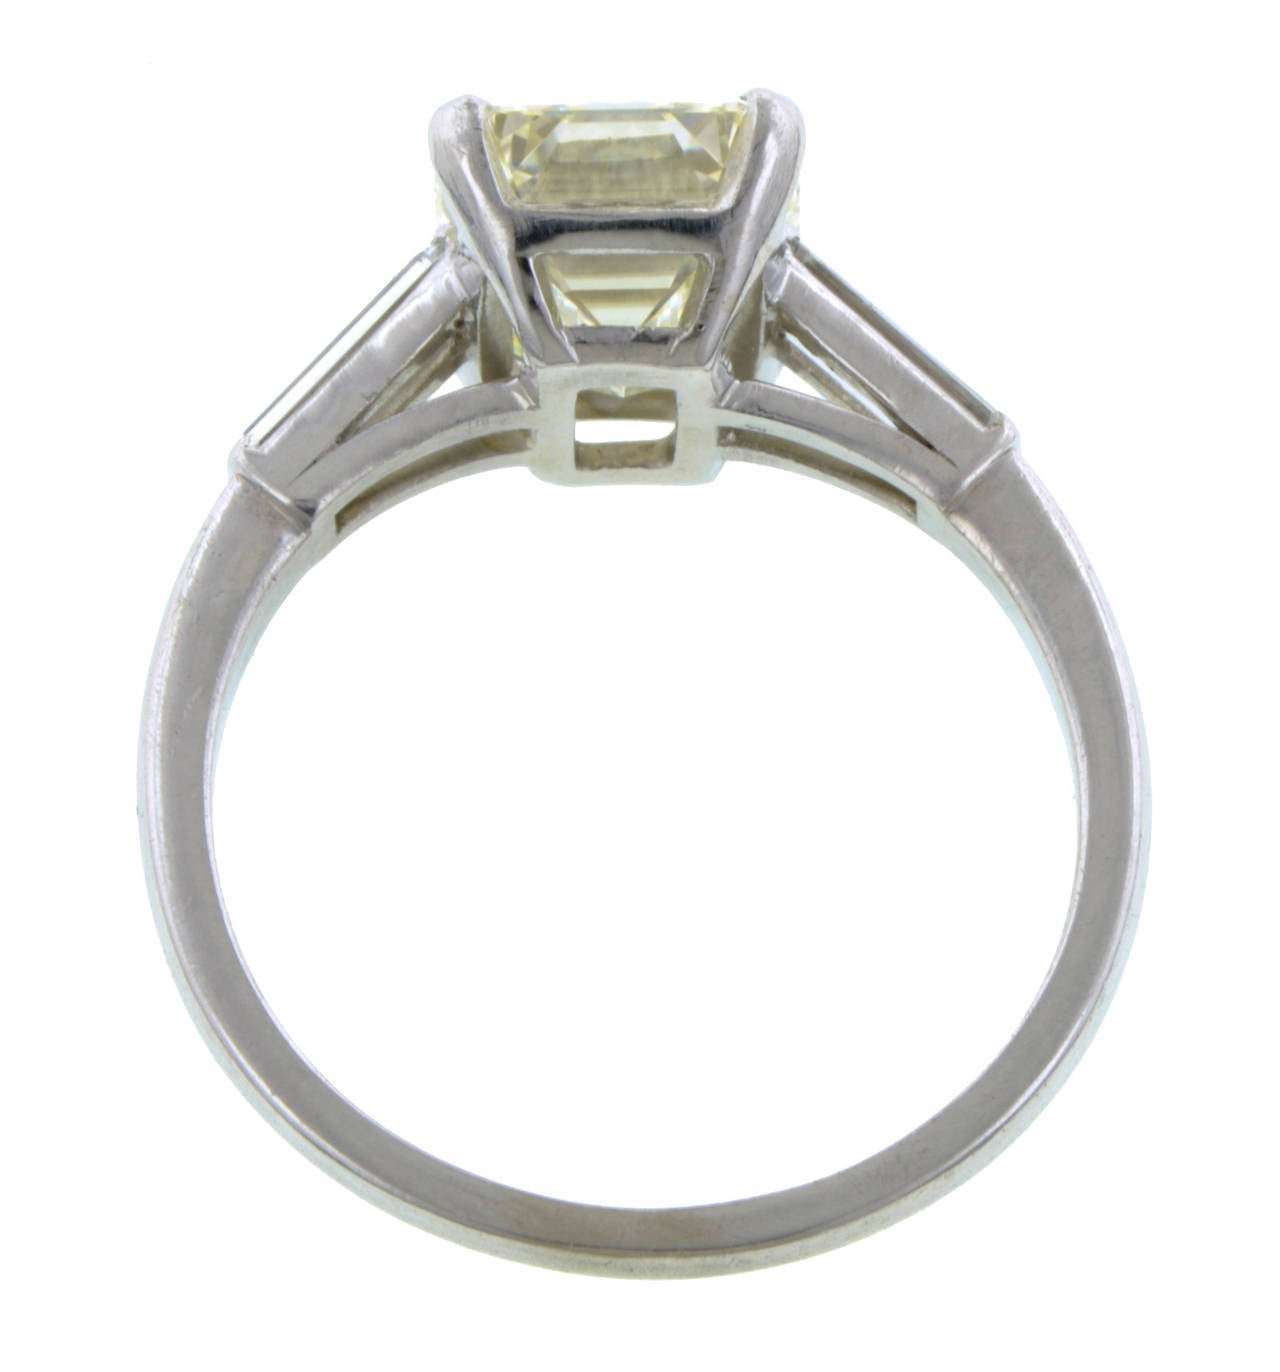 2 60 Carat Emerald Cut Diamond Platinum Engagement Ring at 1stdibs